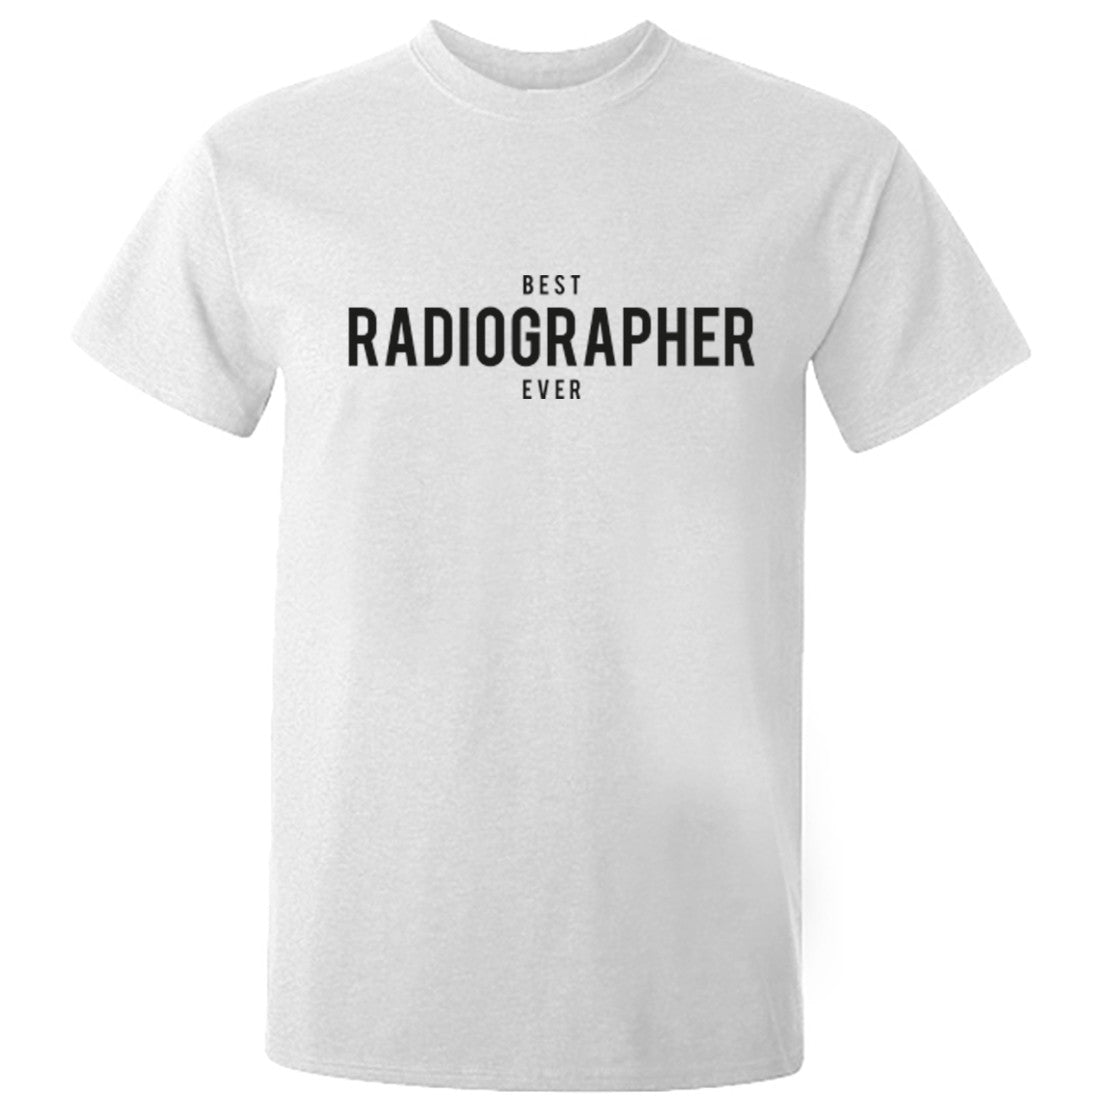 Best Radiographer Ever Unisex Fit T-Shirt K1504